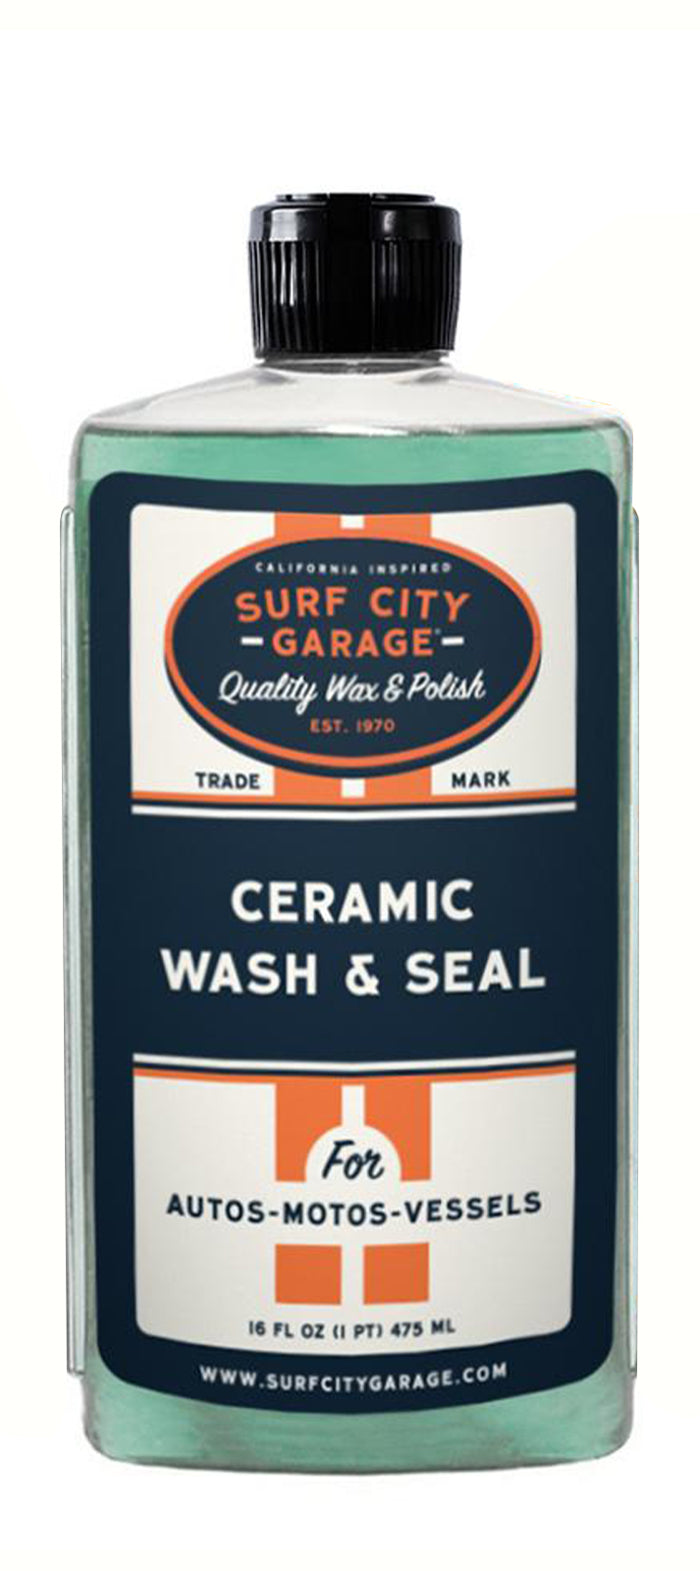 NEW LOOK! Ceramic Wash & Seal